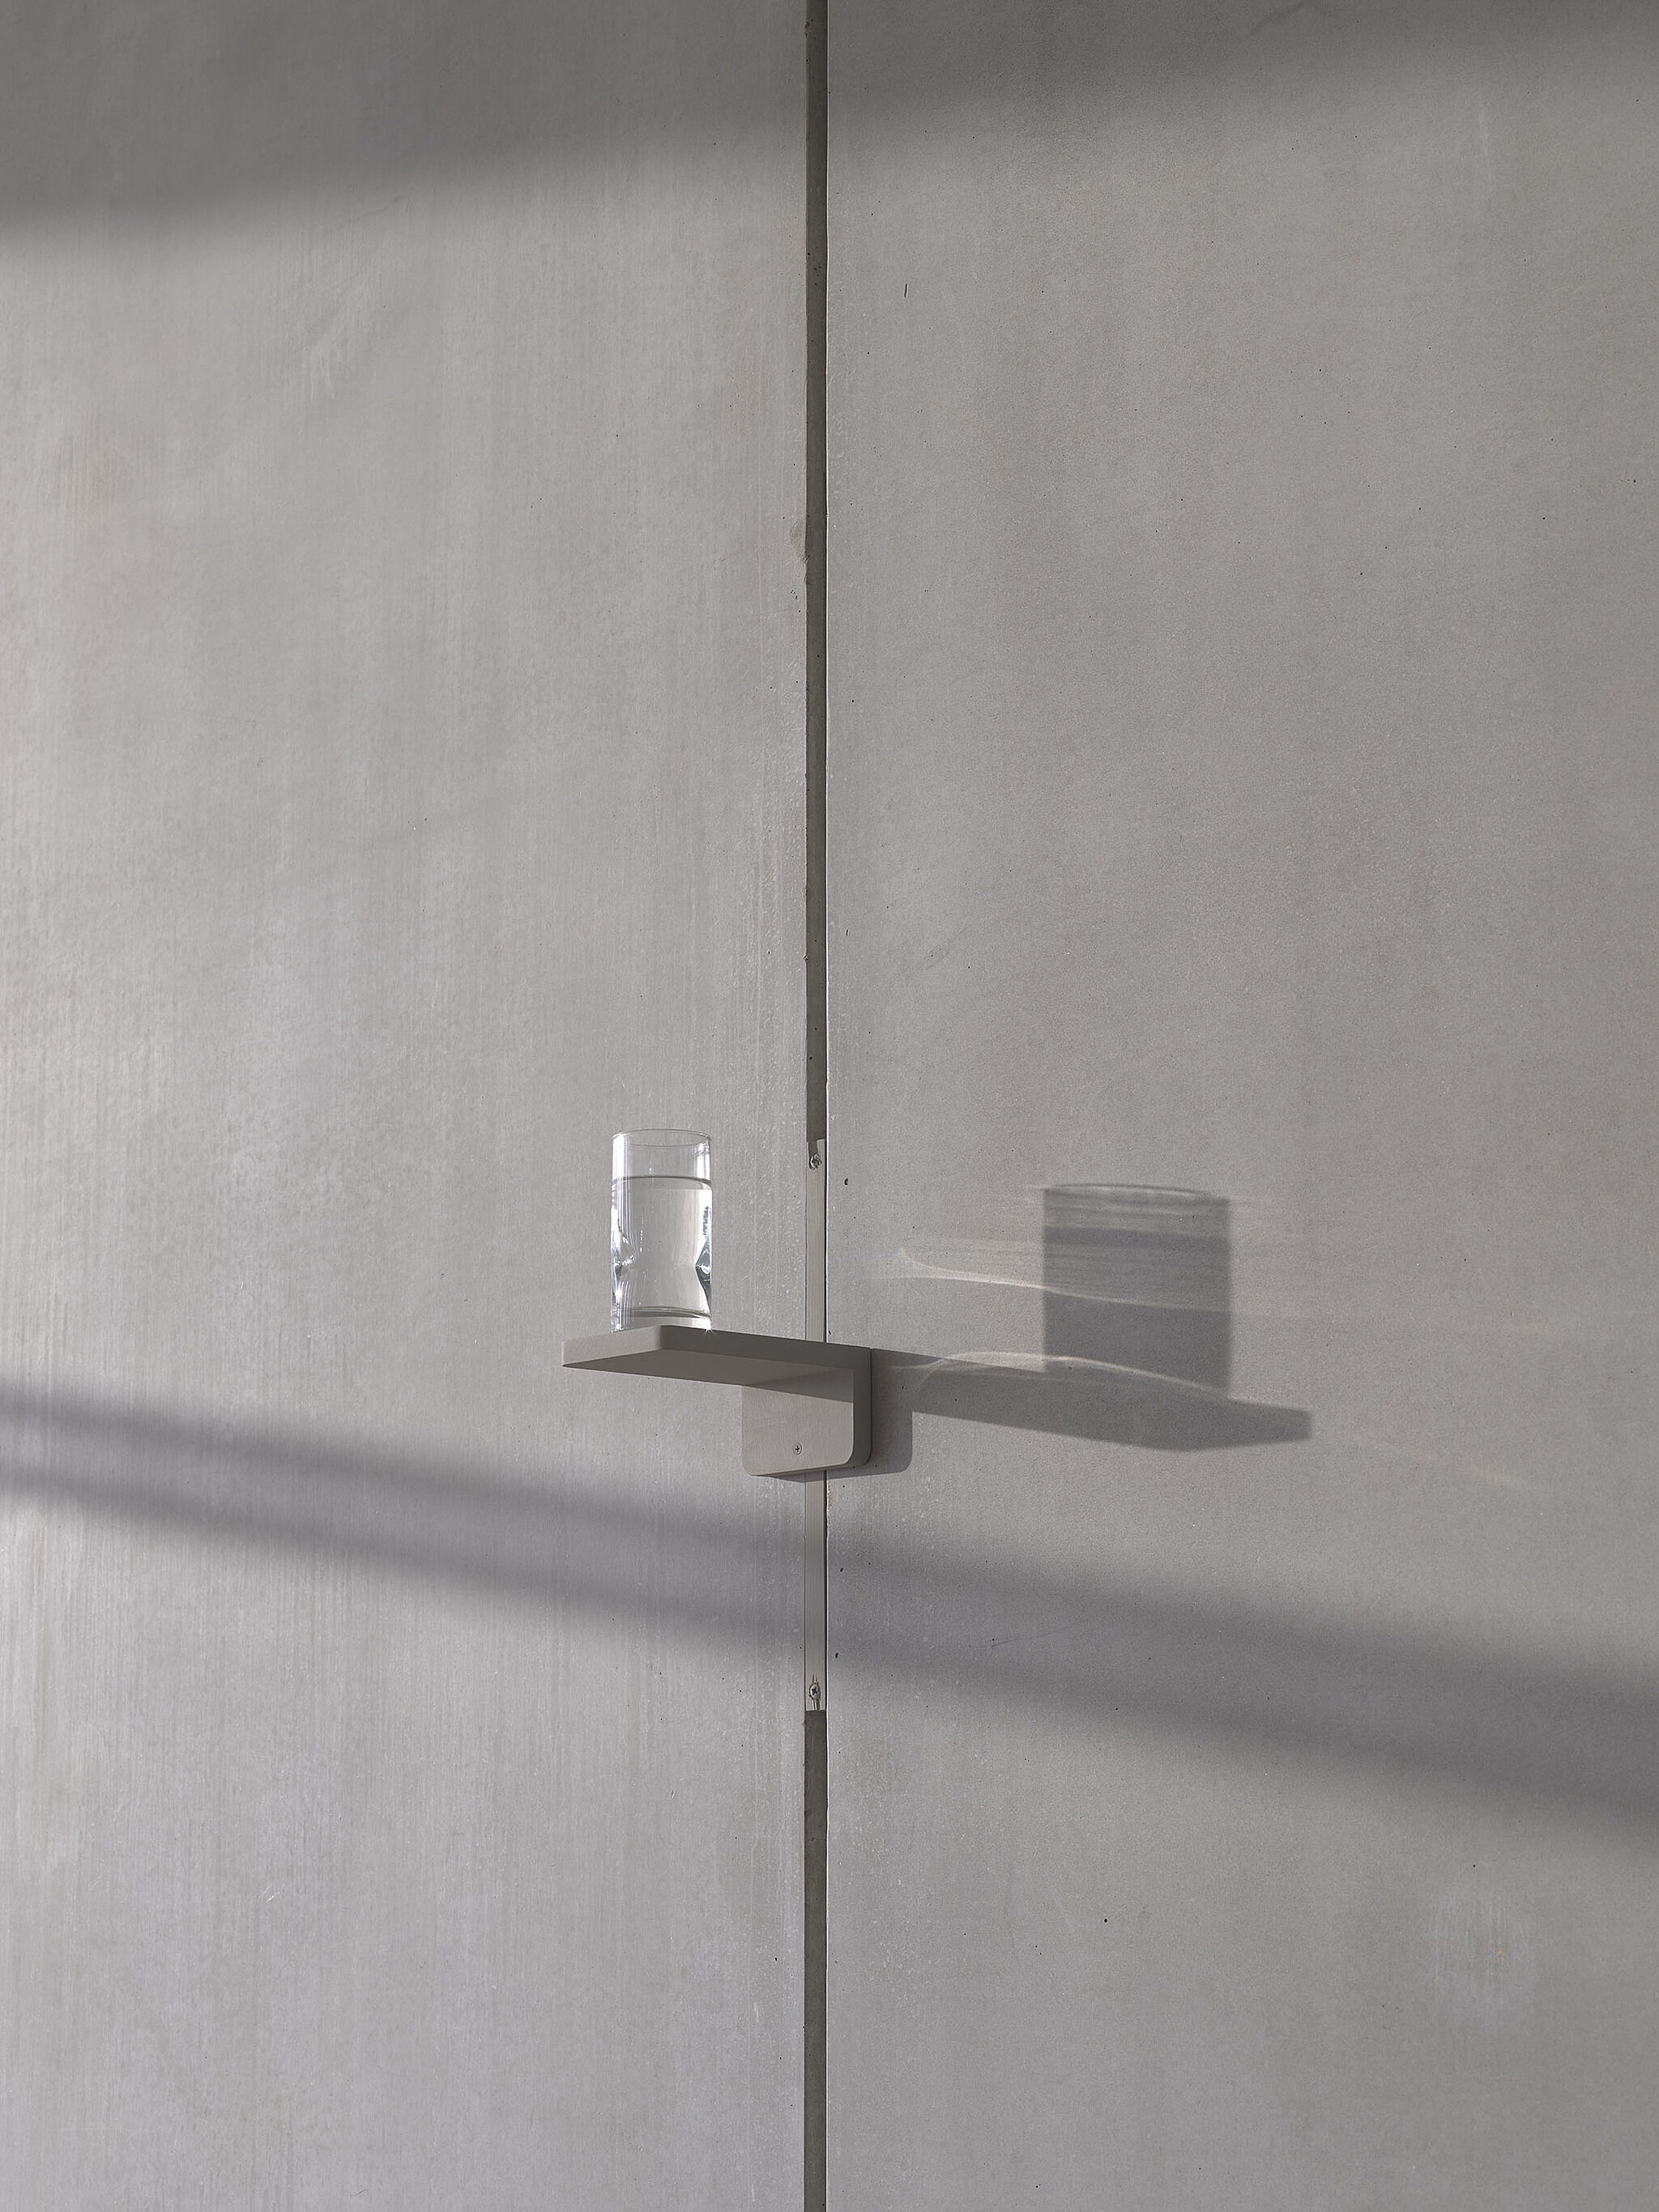 A glass of water sitting on a high shelf in the Whitney lobby.